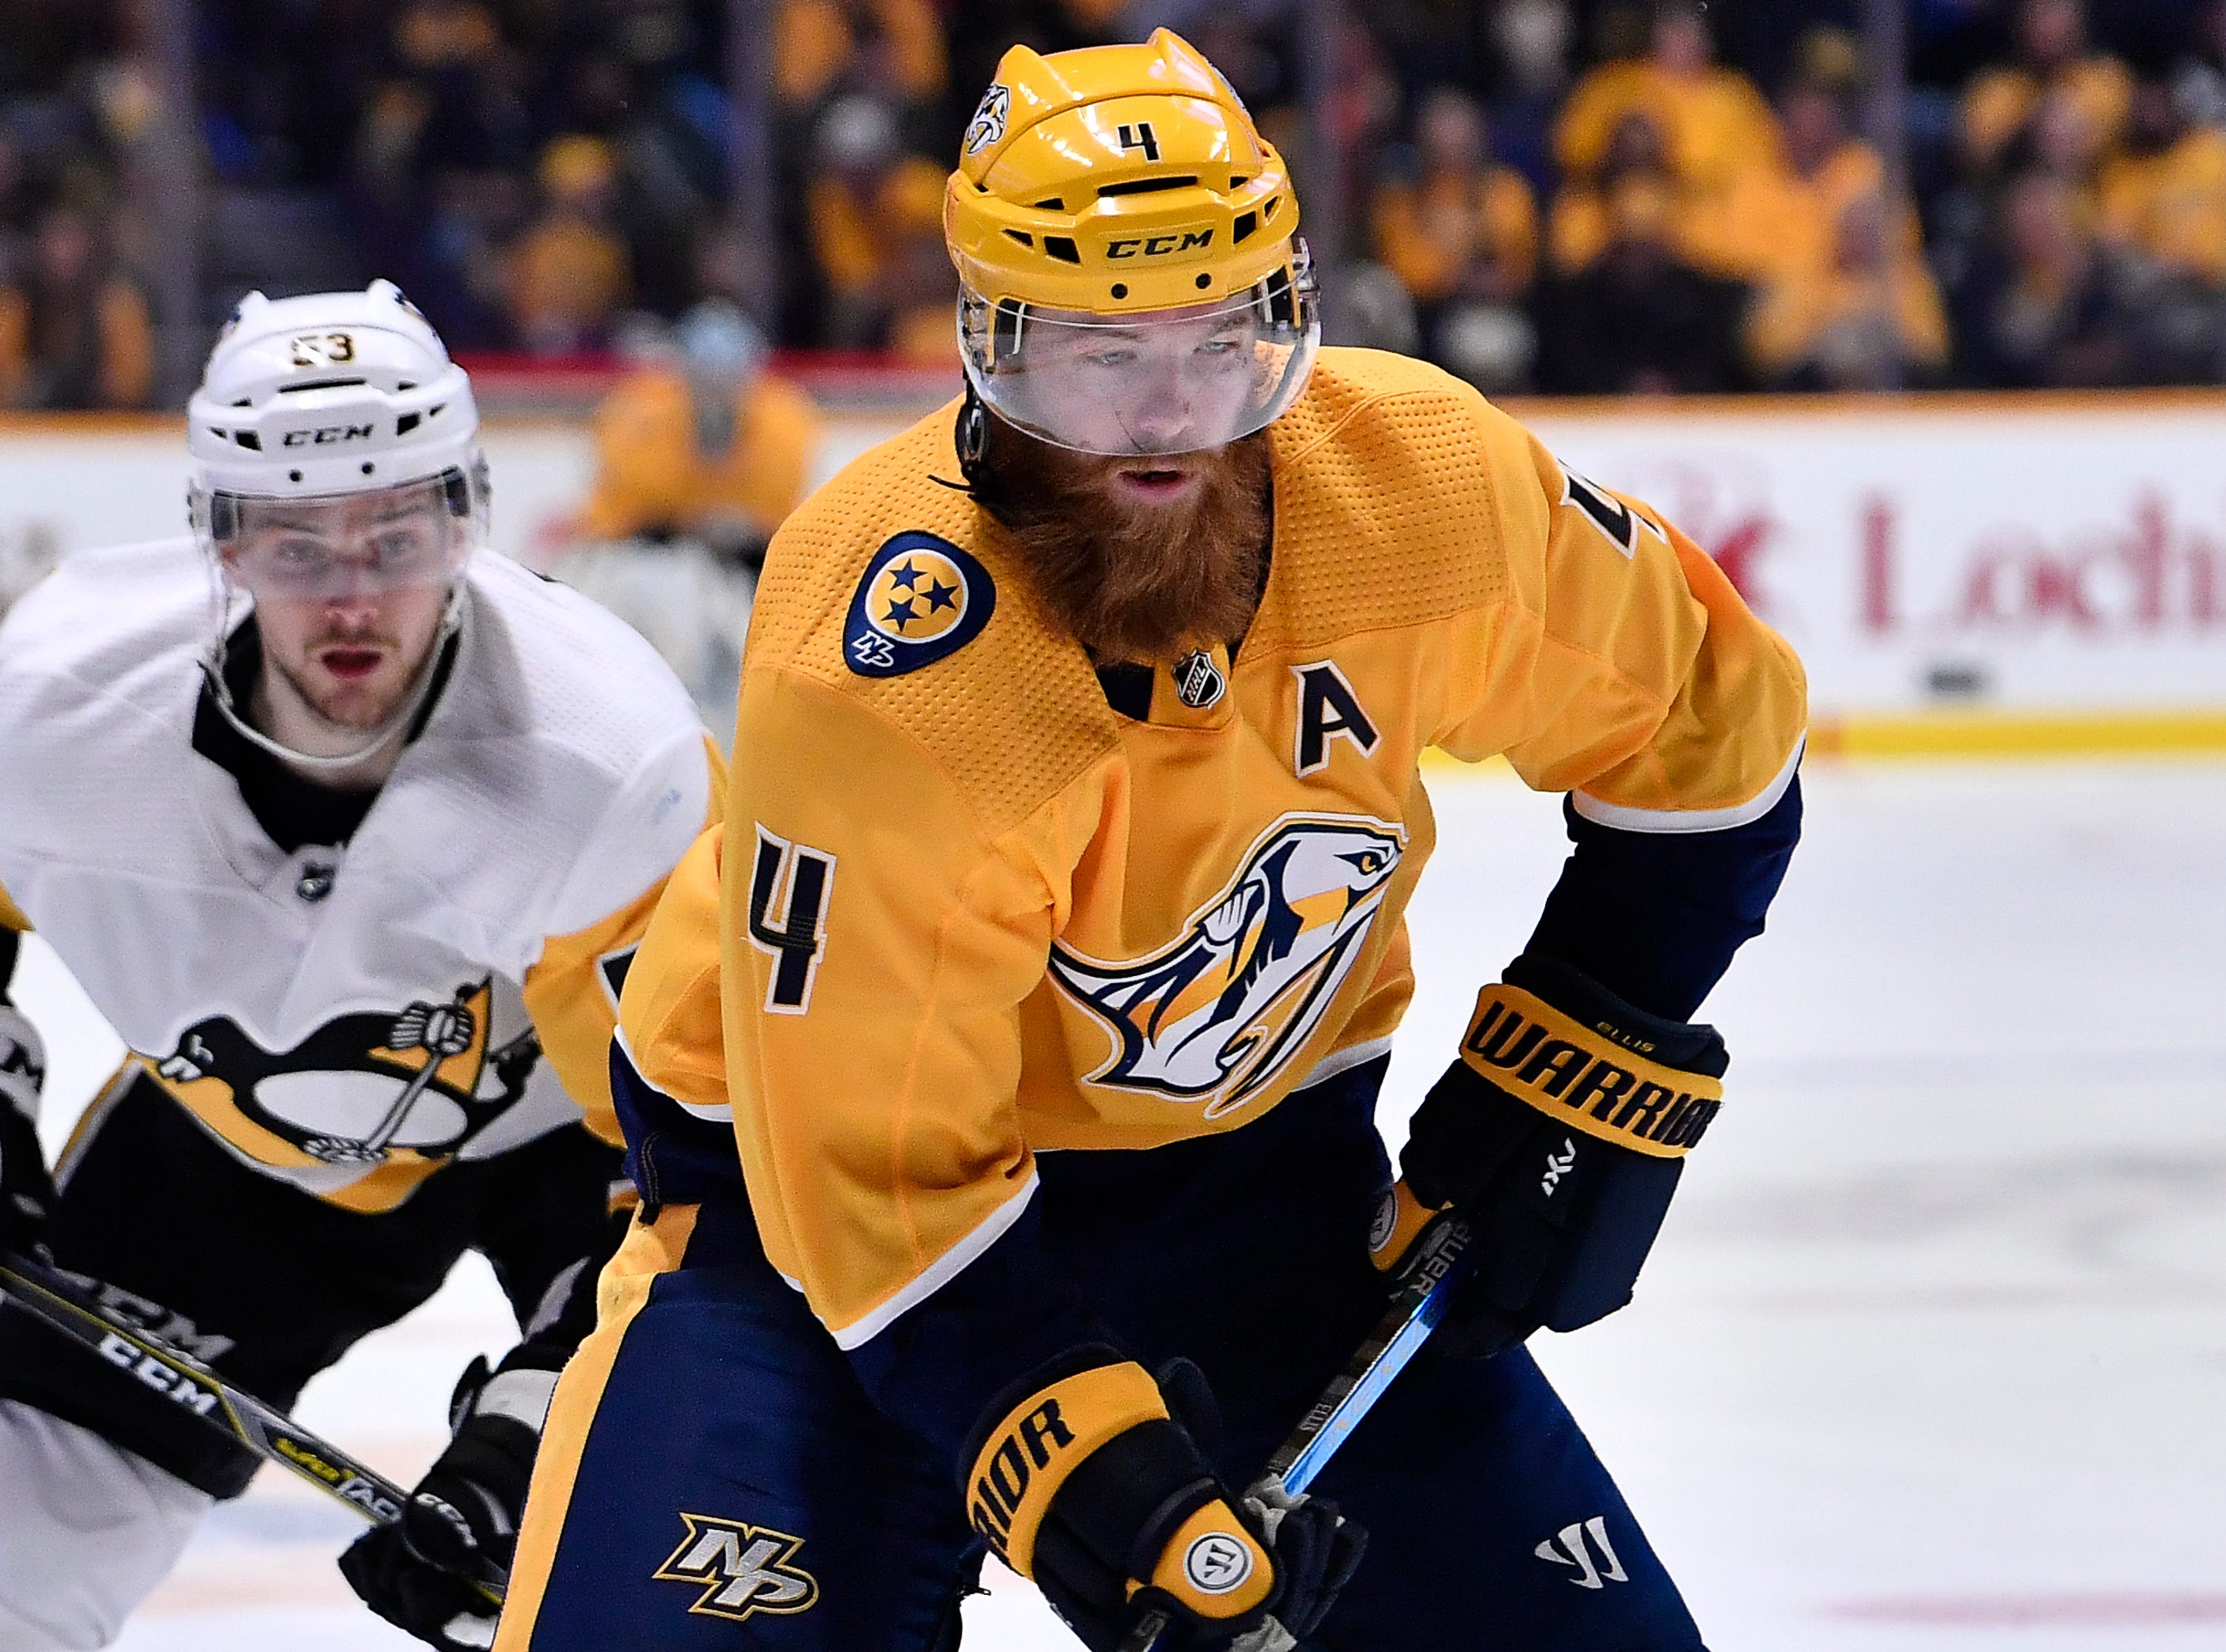 Predators defenseman Ryan Ellis (4) speeds past a Penguins defender during the third period at Bridgestone Arena Thursday, March 21, 2019 in Nashville, Tenn.